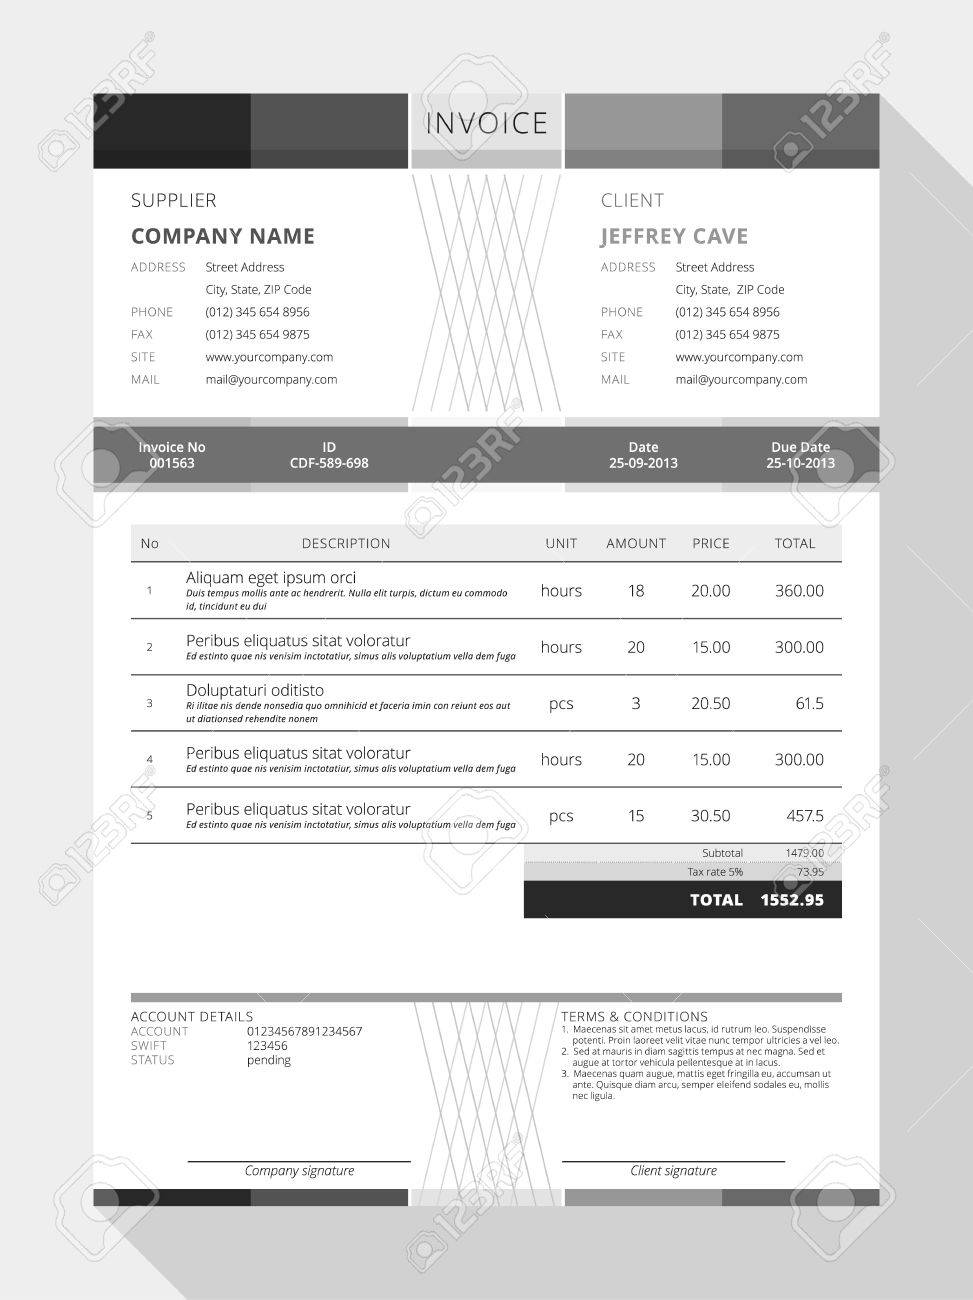 Usdgus  Stunning Design An Invoice  Professional Graphic Design Invoice  With Fascinating Vector Customizable Invoice Form Template Design Vector   Design An Invoice With Archaic Invoice Discount Terms Also Invoices Program In Addition Invoice Accounting Definition And Web Development Invoice As Well As Free Service Invoice Additionally Make Invoice Template From Happytomco With Usdgus  Fascinating Design An Invoice  Professional Graphic Design Invoice  With Archaic Vector Customizable Invoice Form Template Design Vector   Design An Invoice And Stunning Invoice Discount Terms Also Invoices Program In Addition Invoice Accounting Definition From Happytomco